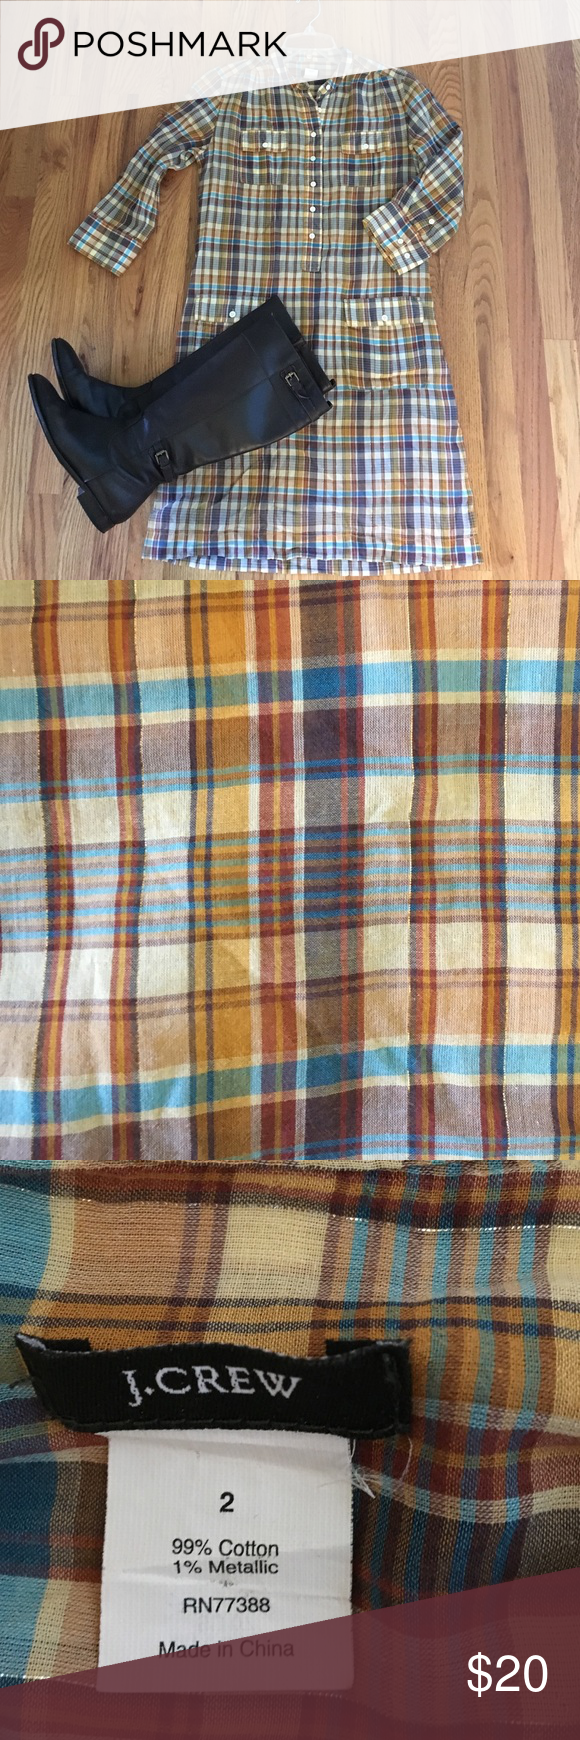 J. Crew plaid dress J. Crew plaid button-up (Henley style) dress in aqua, brown cream and yellow with a faint silver thread running throughout. Two pockets at the top and two pockets on the skirt area. Quarter sleeve length with buttons to roll up sleeves as desired. God used condition. J. Crew Dresses